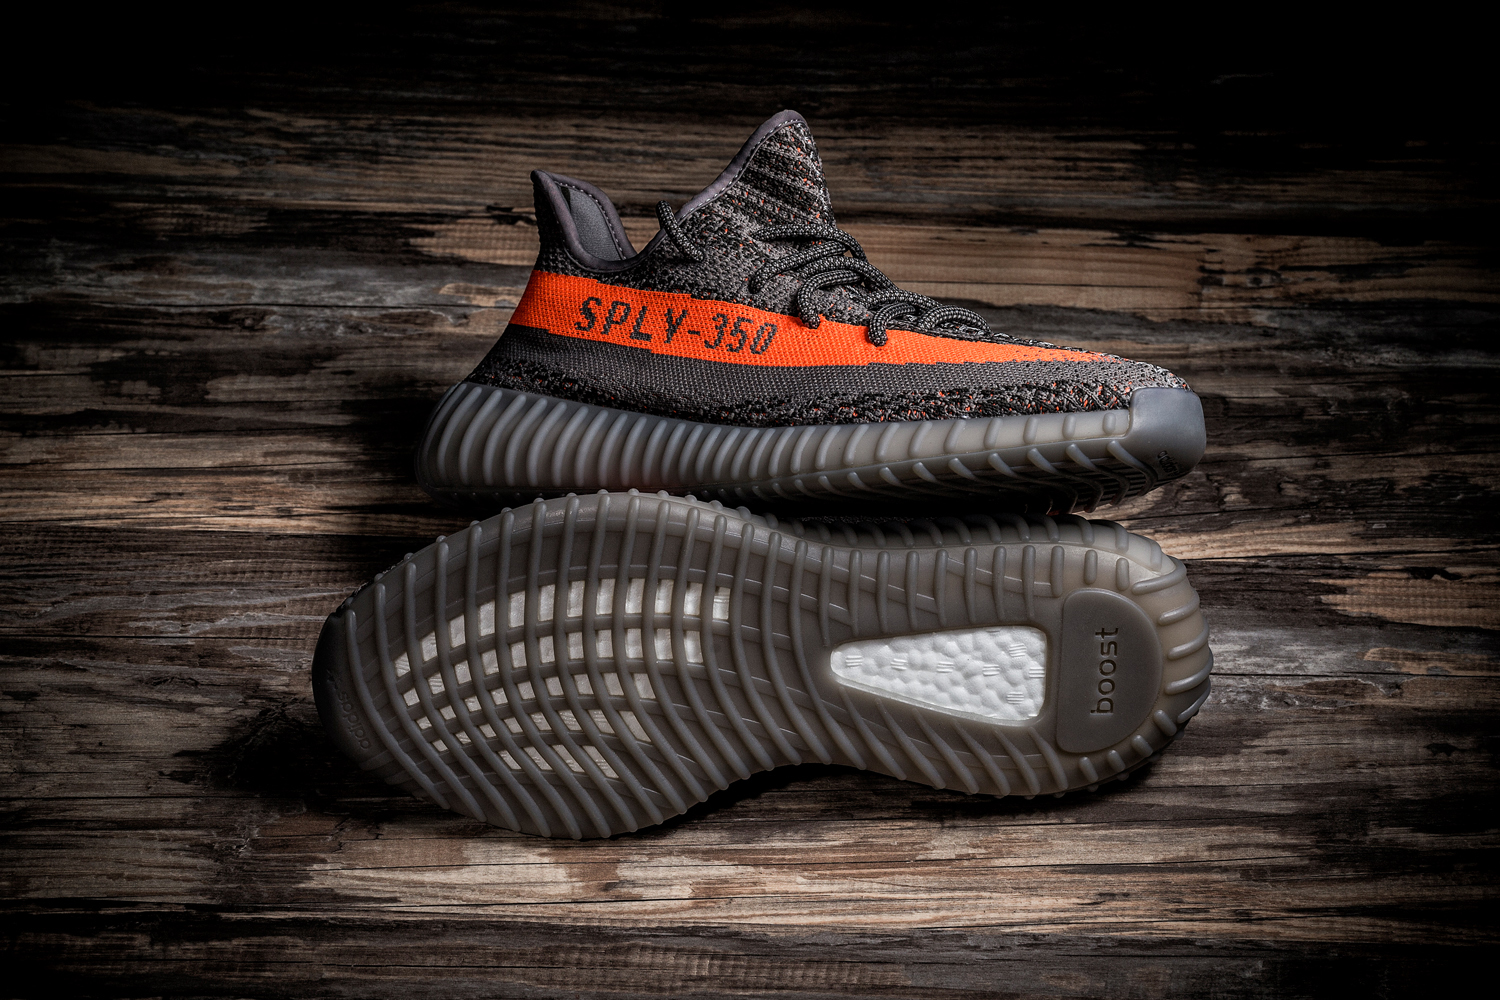 A Closer Look at the adidas Yeezy Boost 350 V2 Kanye west SOLAR RED/STEEPLE GRAY/BELUGA primeknit - 1316978